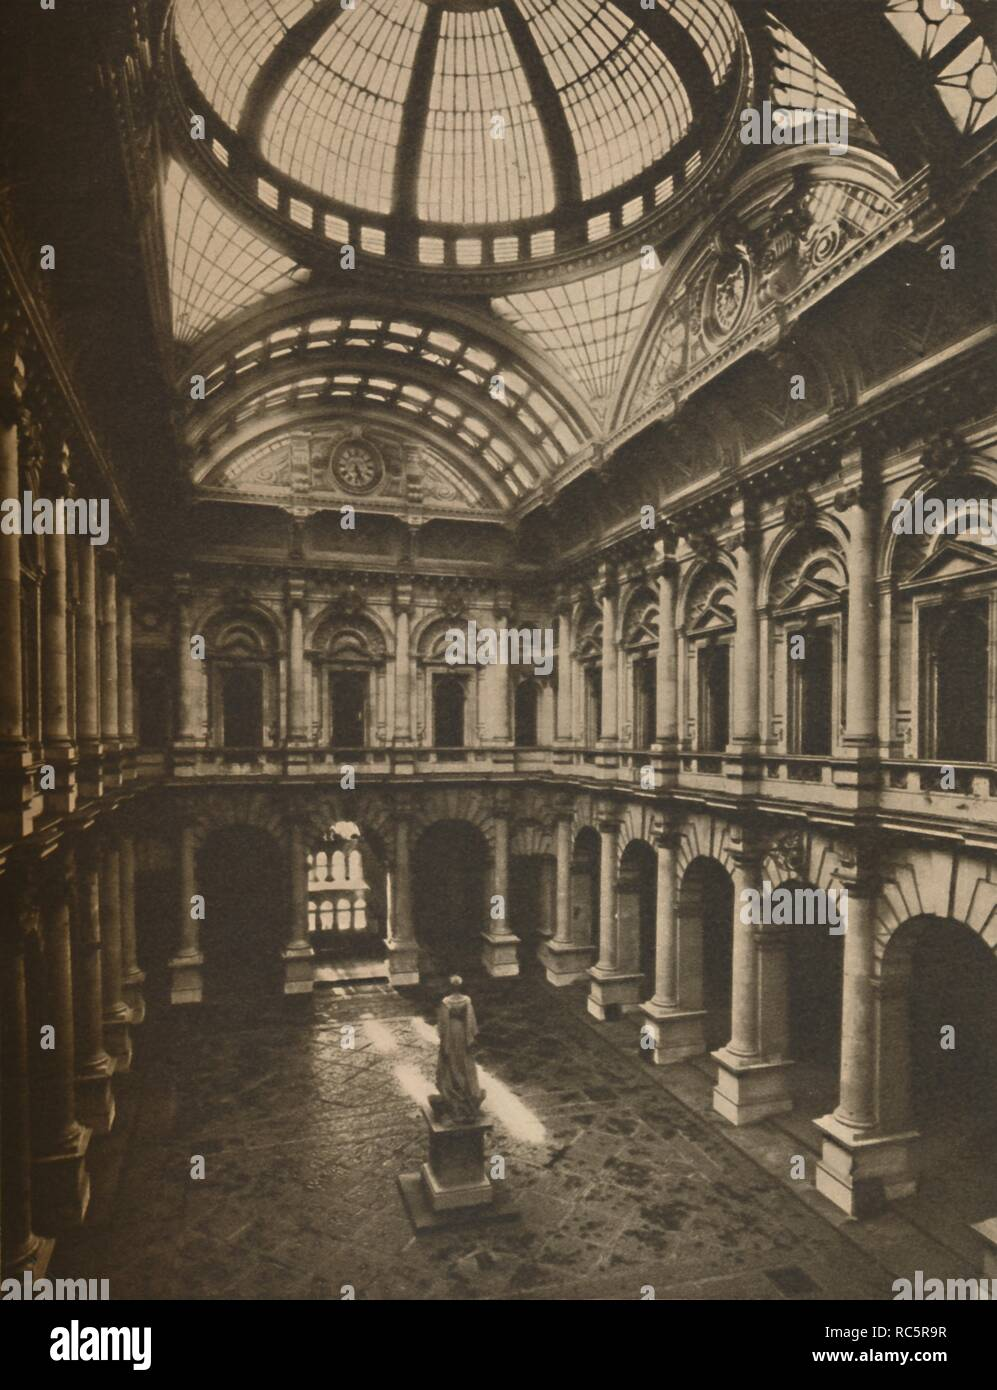 "'Glass-Roofed Interior Court of the Royal Exchange', c1935. The Royal Exchange was founded in the 16th century by the merchant Thomas Gresham on the suggestion of his factor Richard Clough to act as a centre of commerce for the City of London. The current building, designed by William Tite, was built in the 1840s. From ""Wonderful London, Volume 3"", edited by Arthur St John Adcock. [The Fleetway House, London, c1935] Stock Photo"